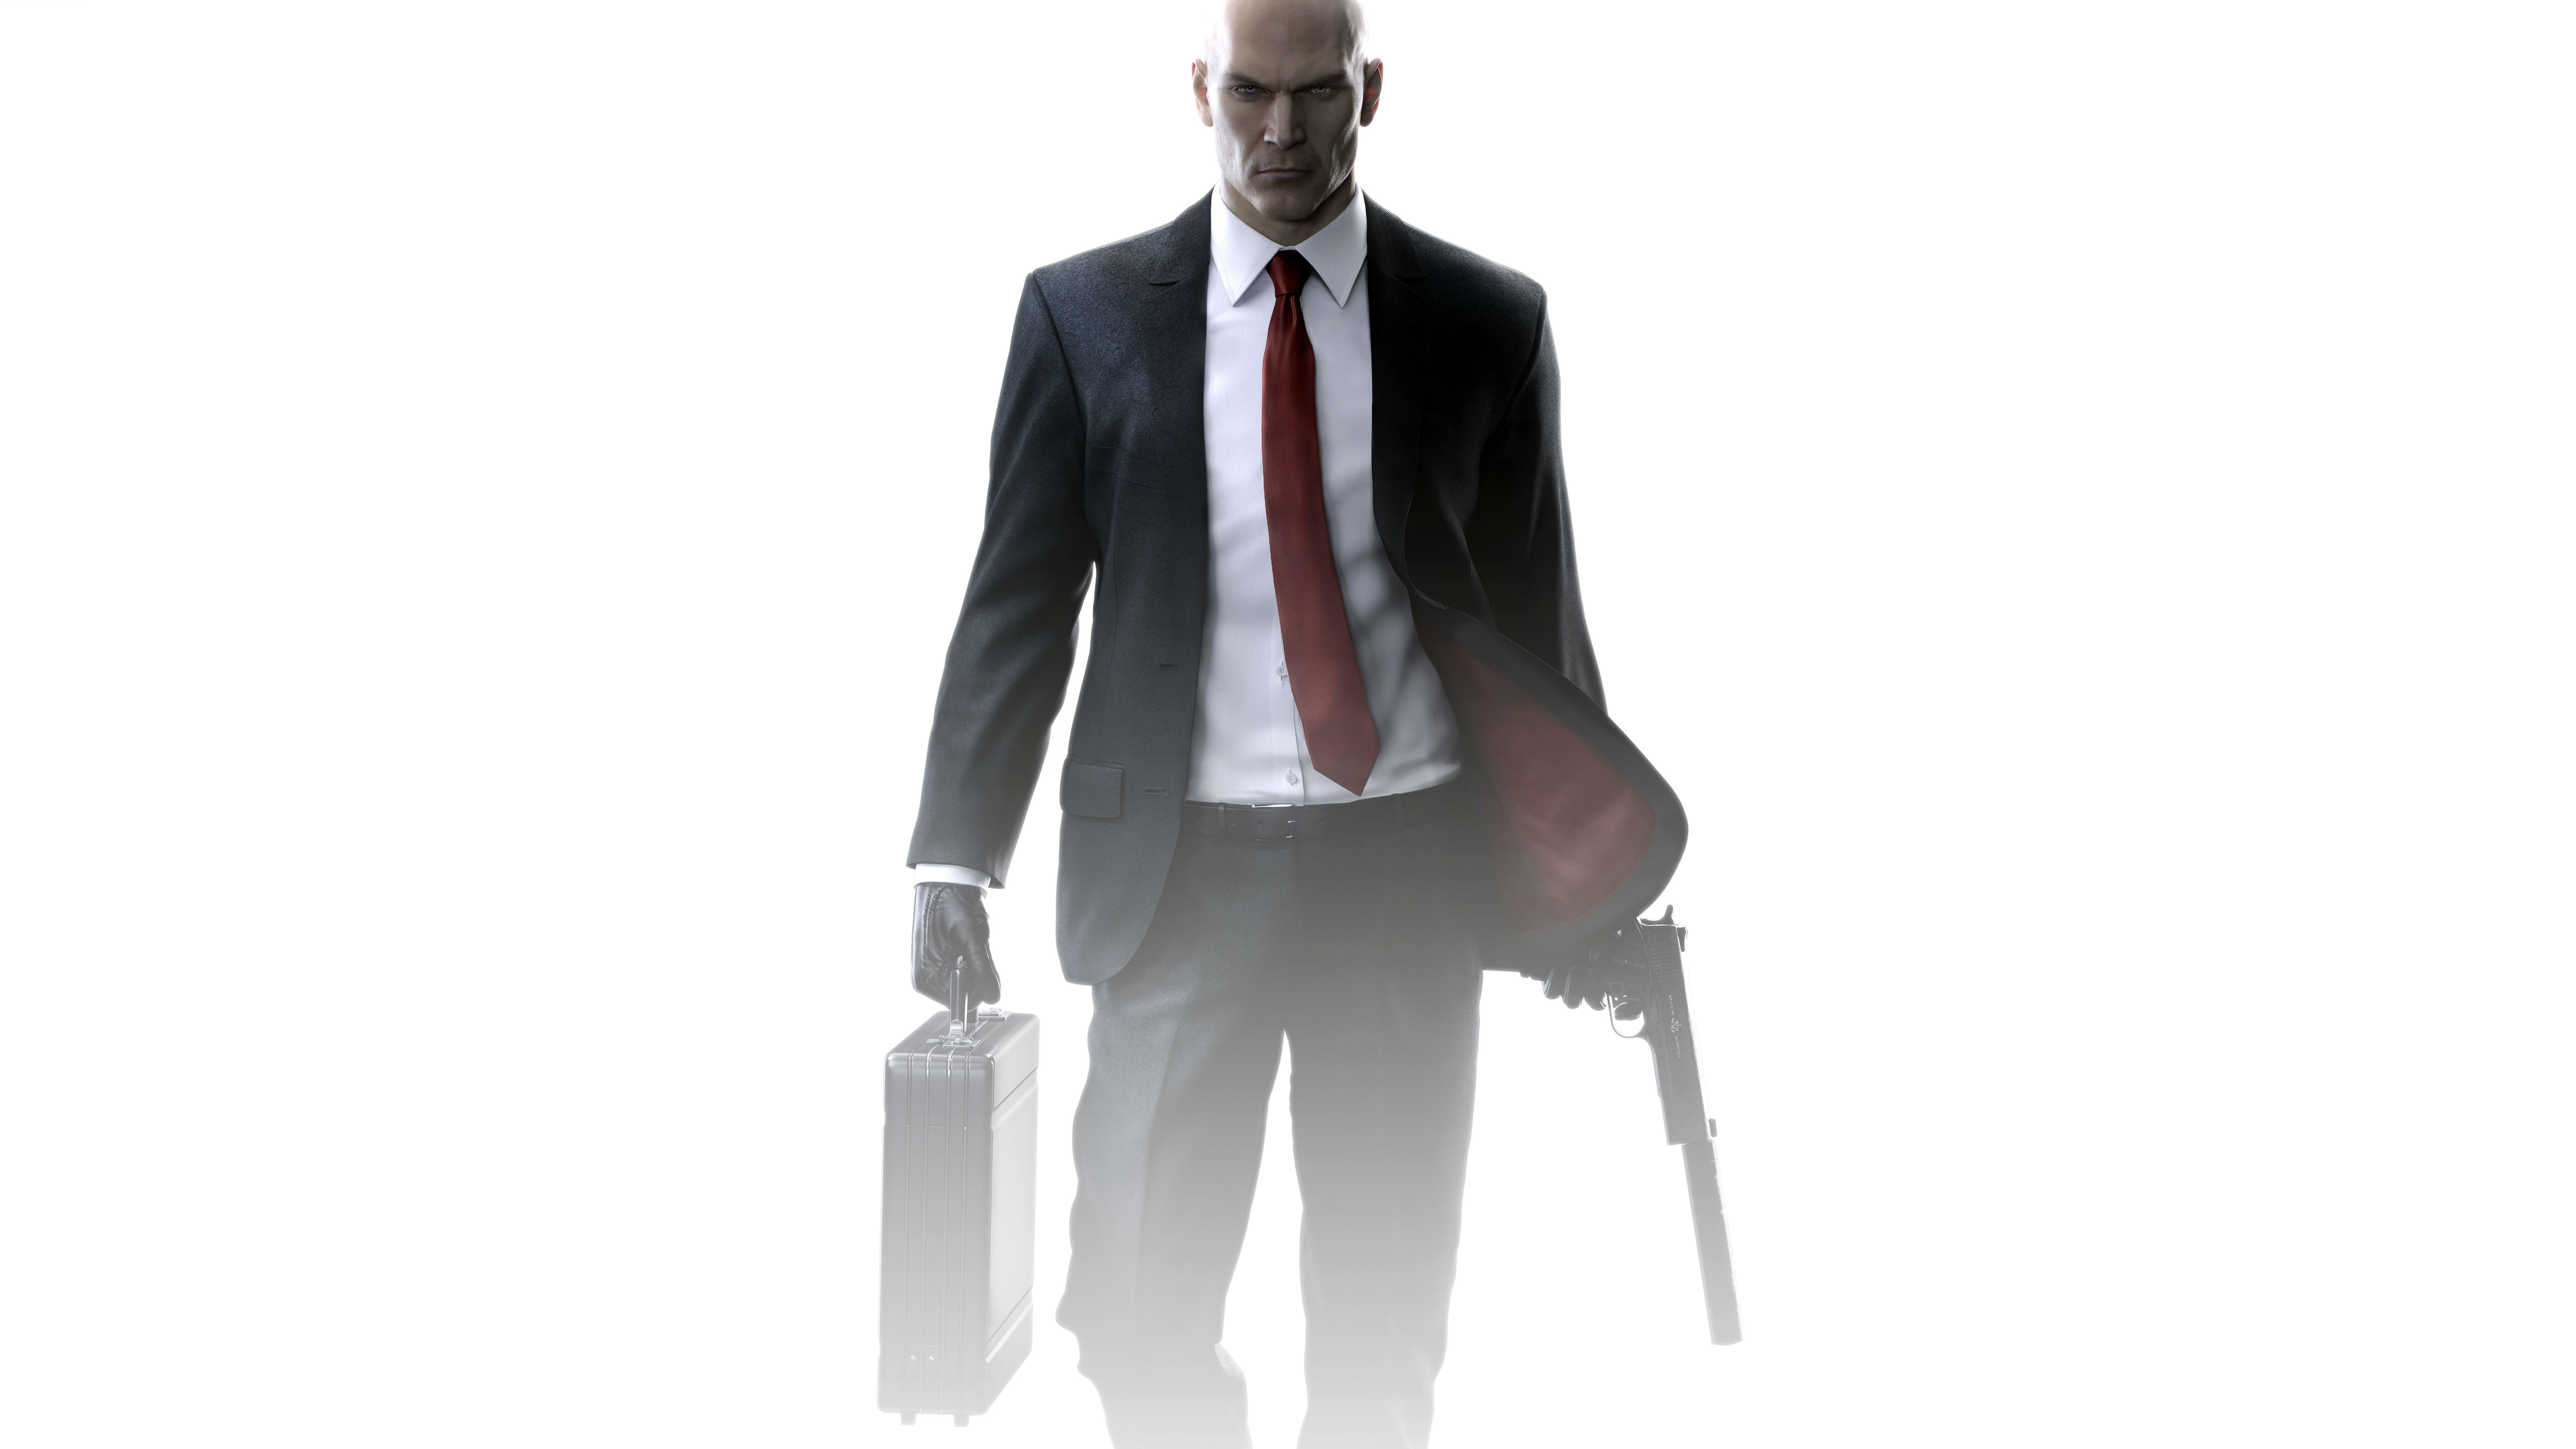 agent 47 hd wallpapers - photo #34